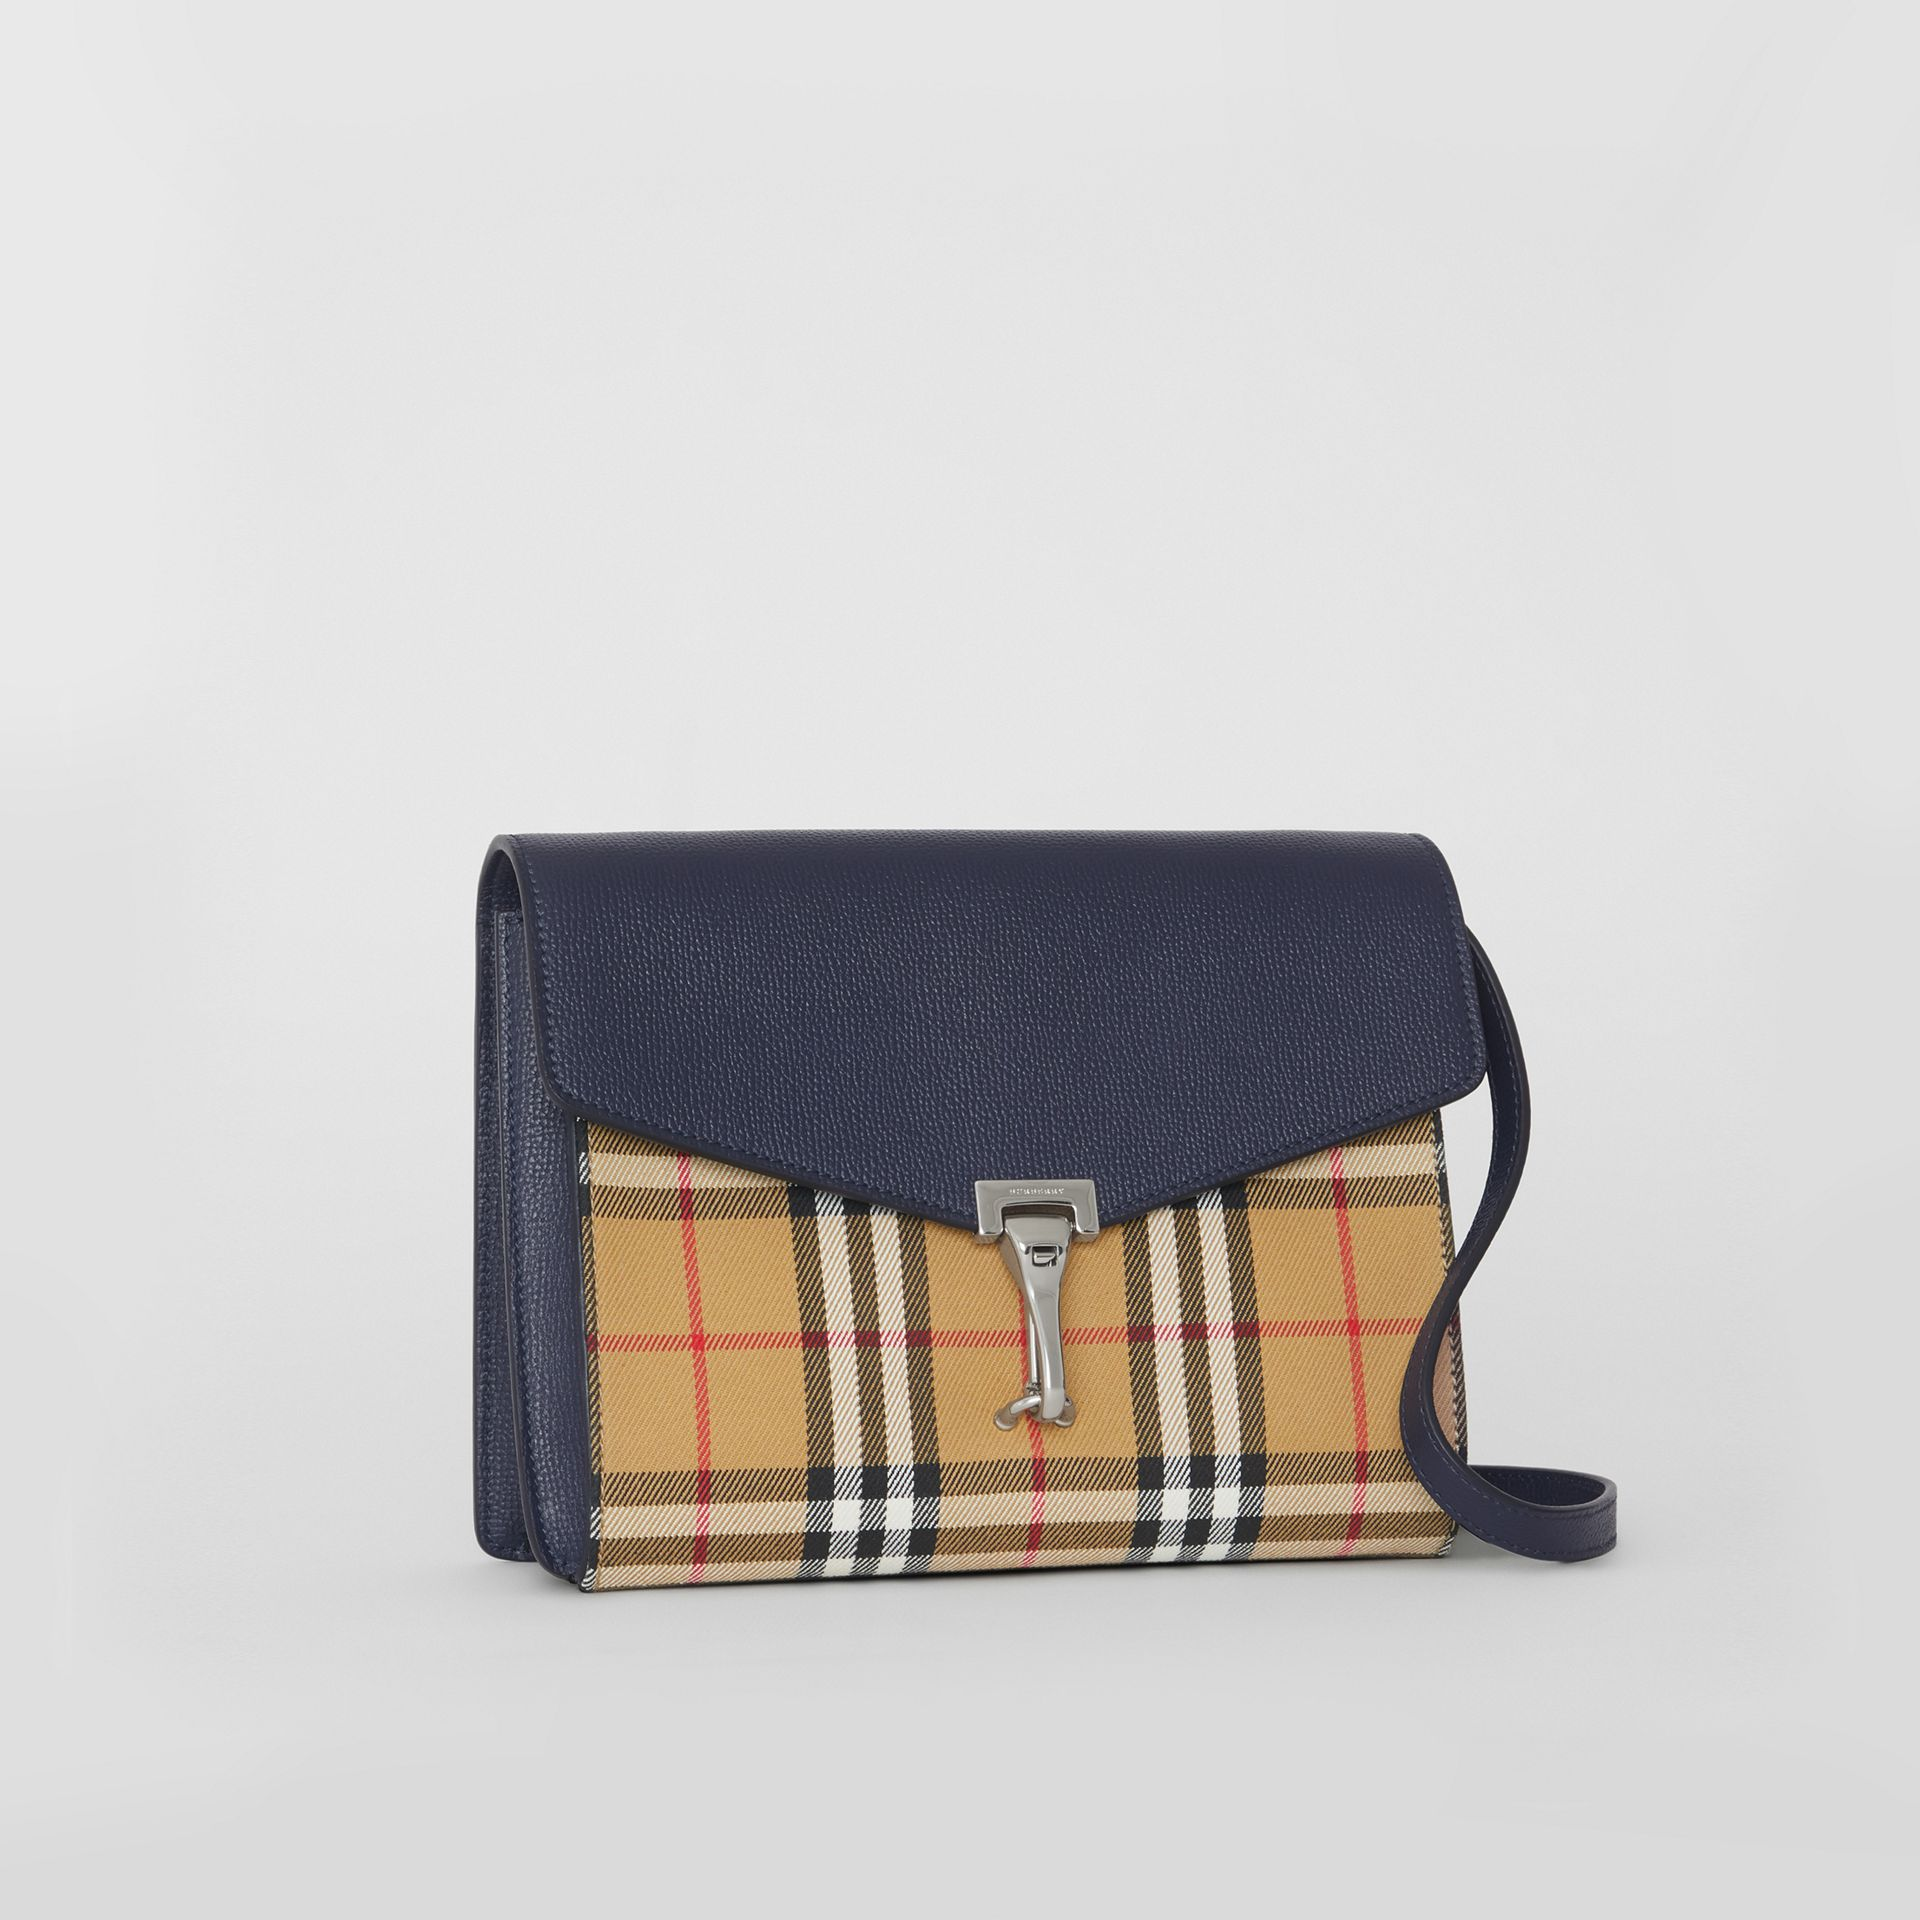 Small Vintage Check and Leather Crossbody Bag in Regency Blue - Women | Burberry Australia - gallery image 4